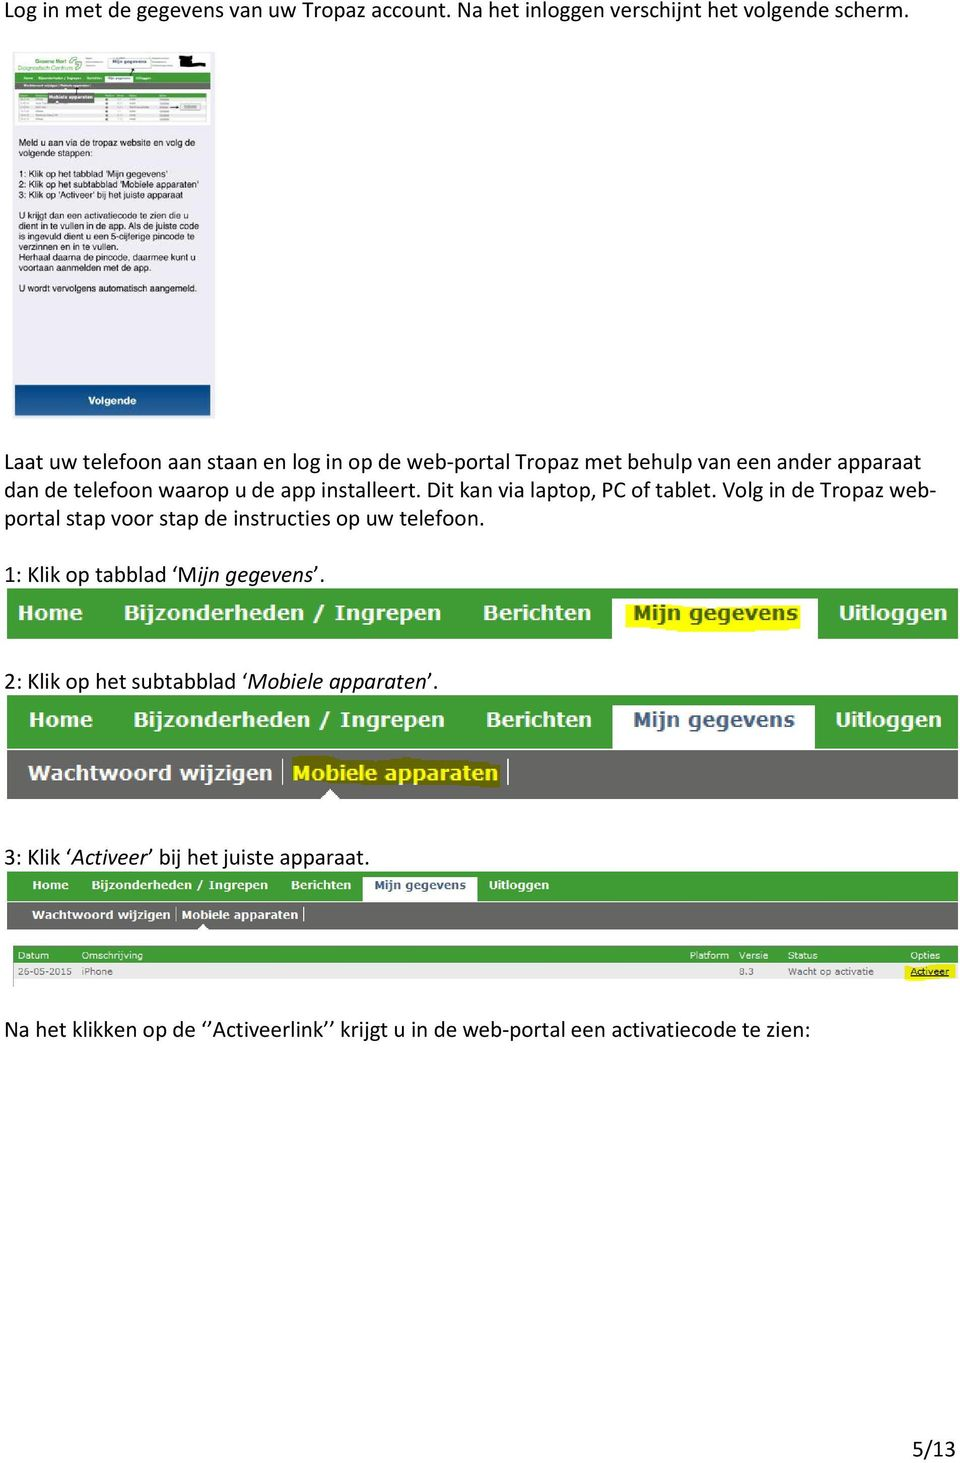 Dit kan via laptop, PC of tablet. Volg in de Tropaz webportal stap voor stap de instructies op uw telefoon.